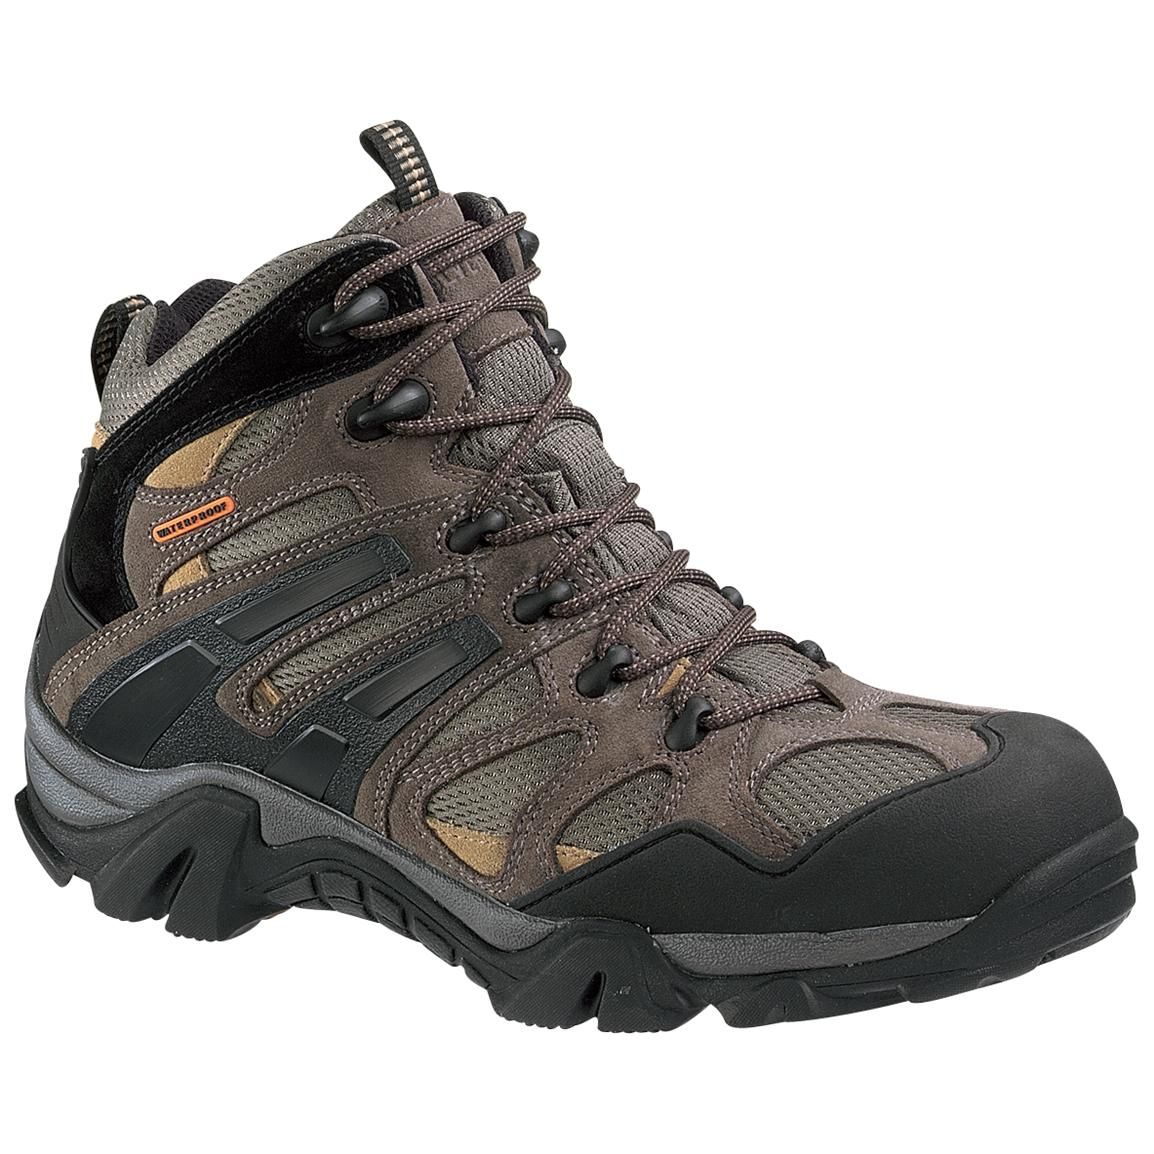 Men's Wolverine® Wilderness Hikers, Gunmetal / Tan